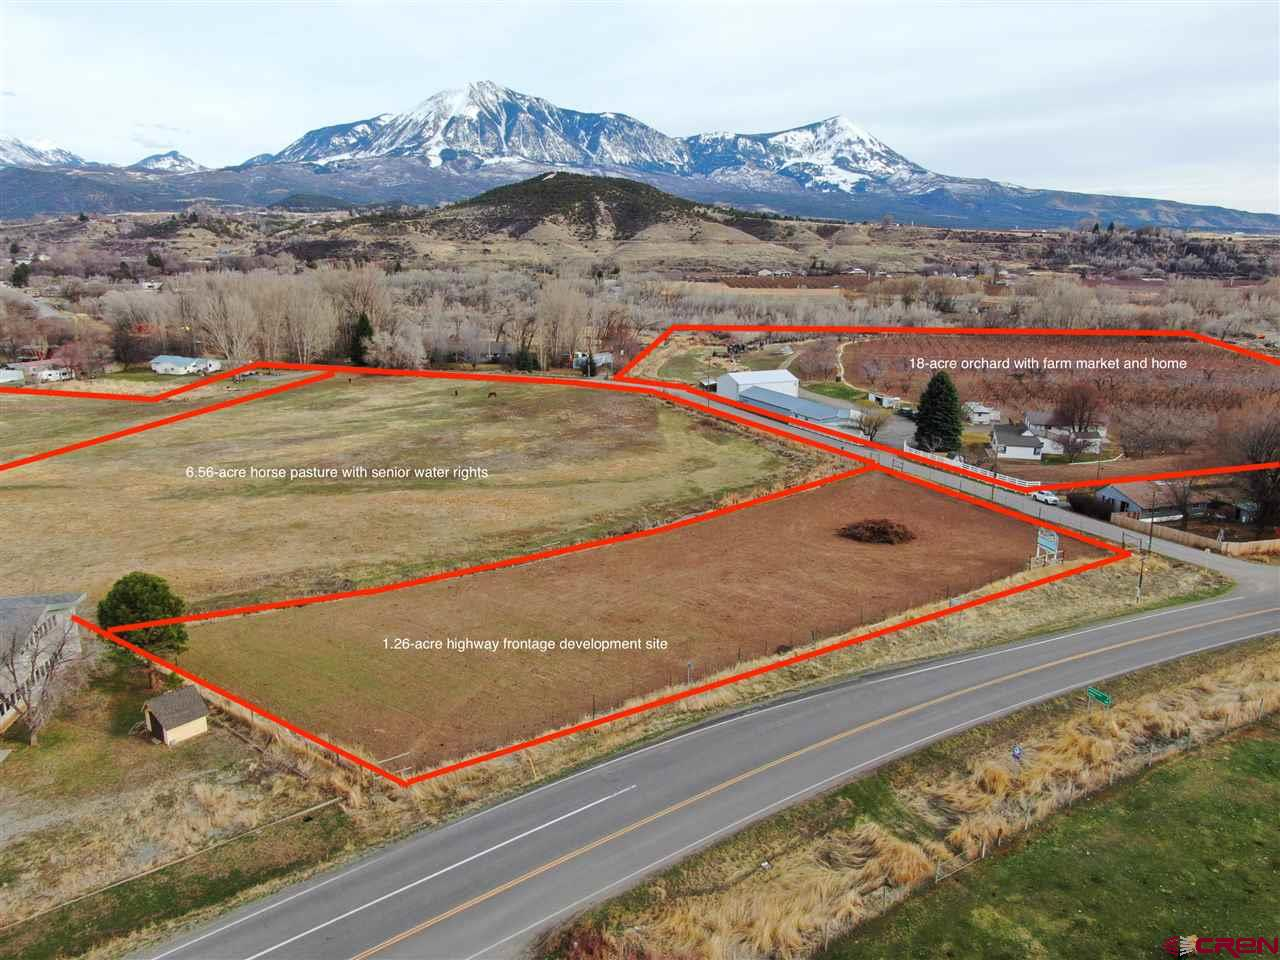 This is a prime 1.2-acre development parcel for commercial use at the entry to the Town of Paonia. Located outside of the town boundaries, this parcel has over 300 feet of frontage on Highway 133 right across the street from the Stop N Save convenience store. It fronts Stahl Road on the south. For years, this parcel was used as a peach orchard, and has excellent water rights for crops. The peach trees were past their prime and recently cleared, so the parcel is ready for a new use, whether as an orchard, residential development, or commercial use. When looking at the aerial photos, this is the smaller parcel that is cleared, directly adjacent to the highway. Any development approvals would have to be granted by Delta County.